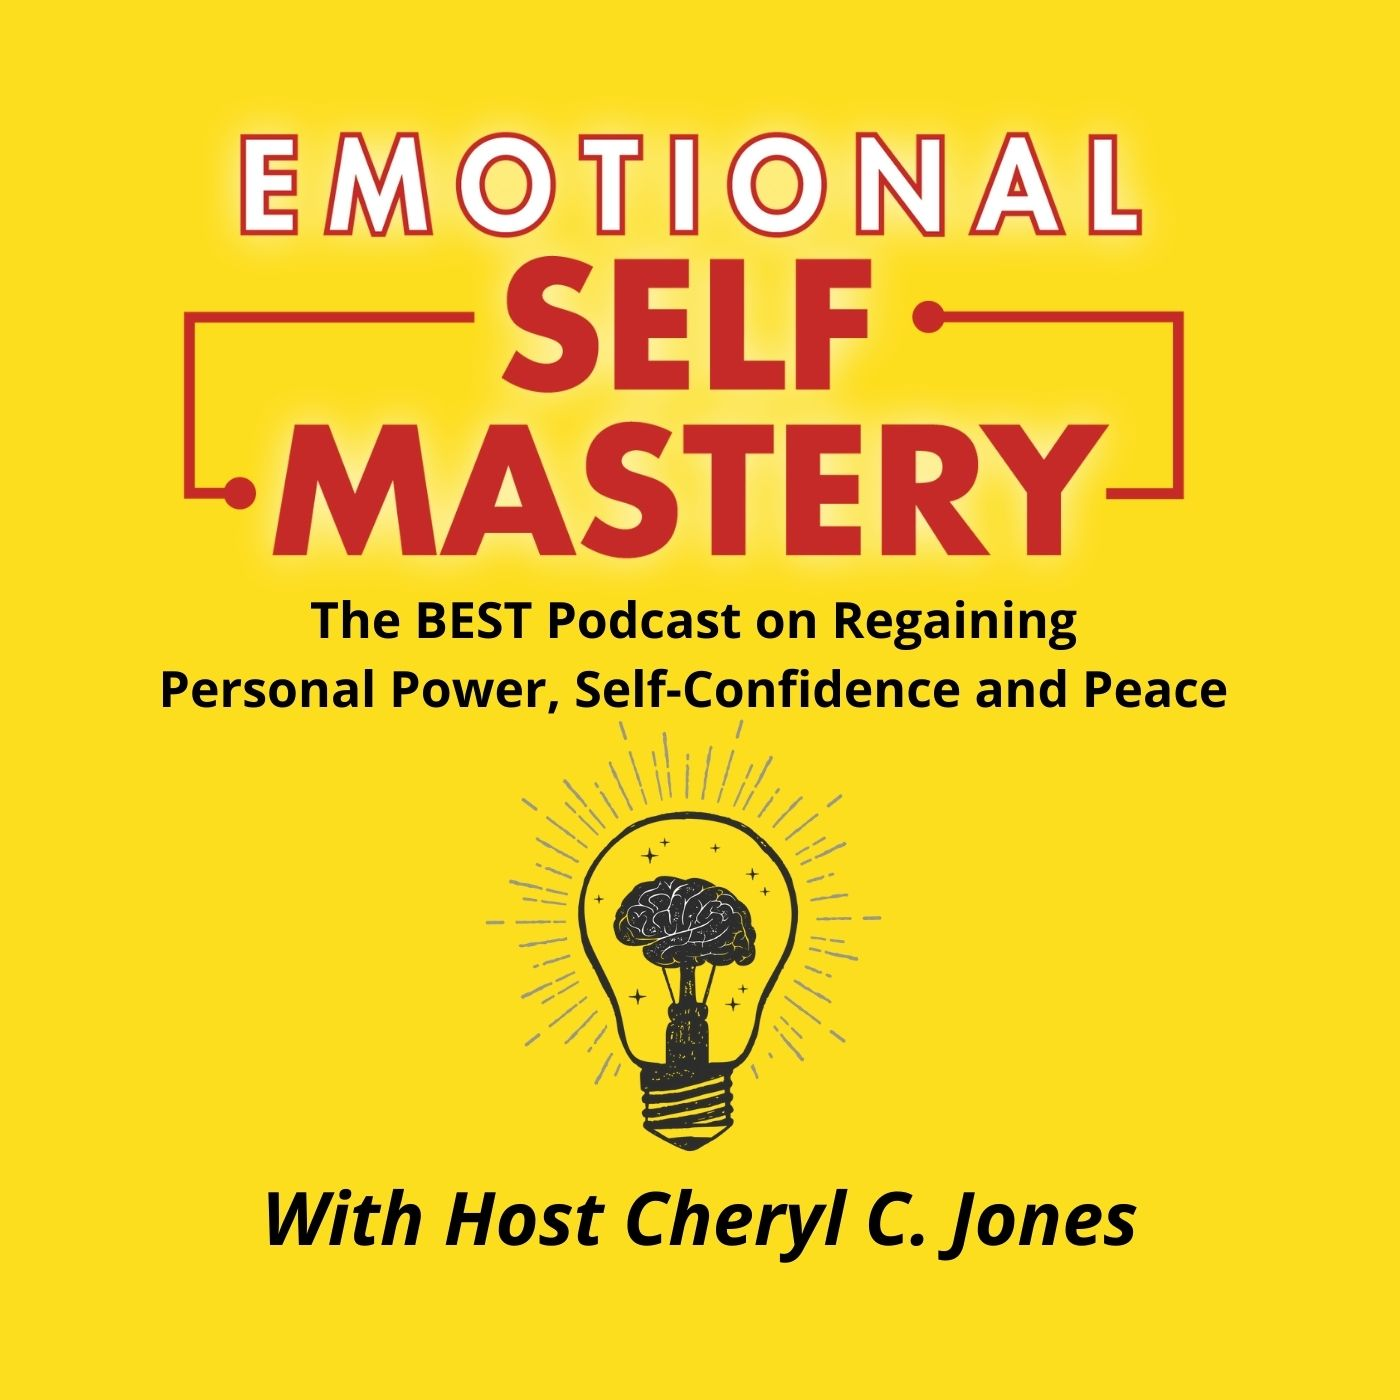 The BEST podcast on Regaining Personal Power Self-Confidence and Peace-2